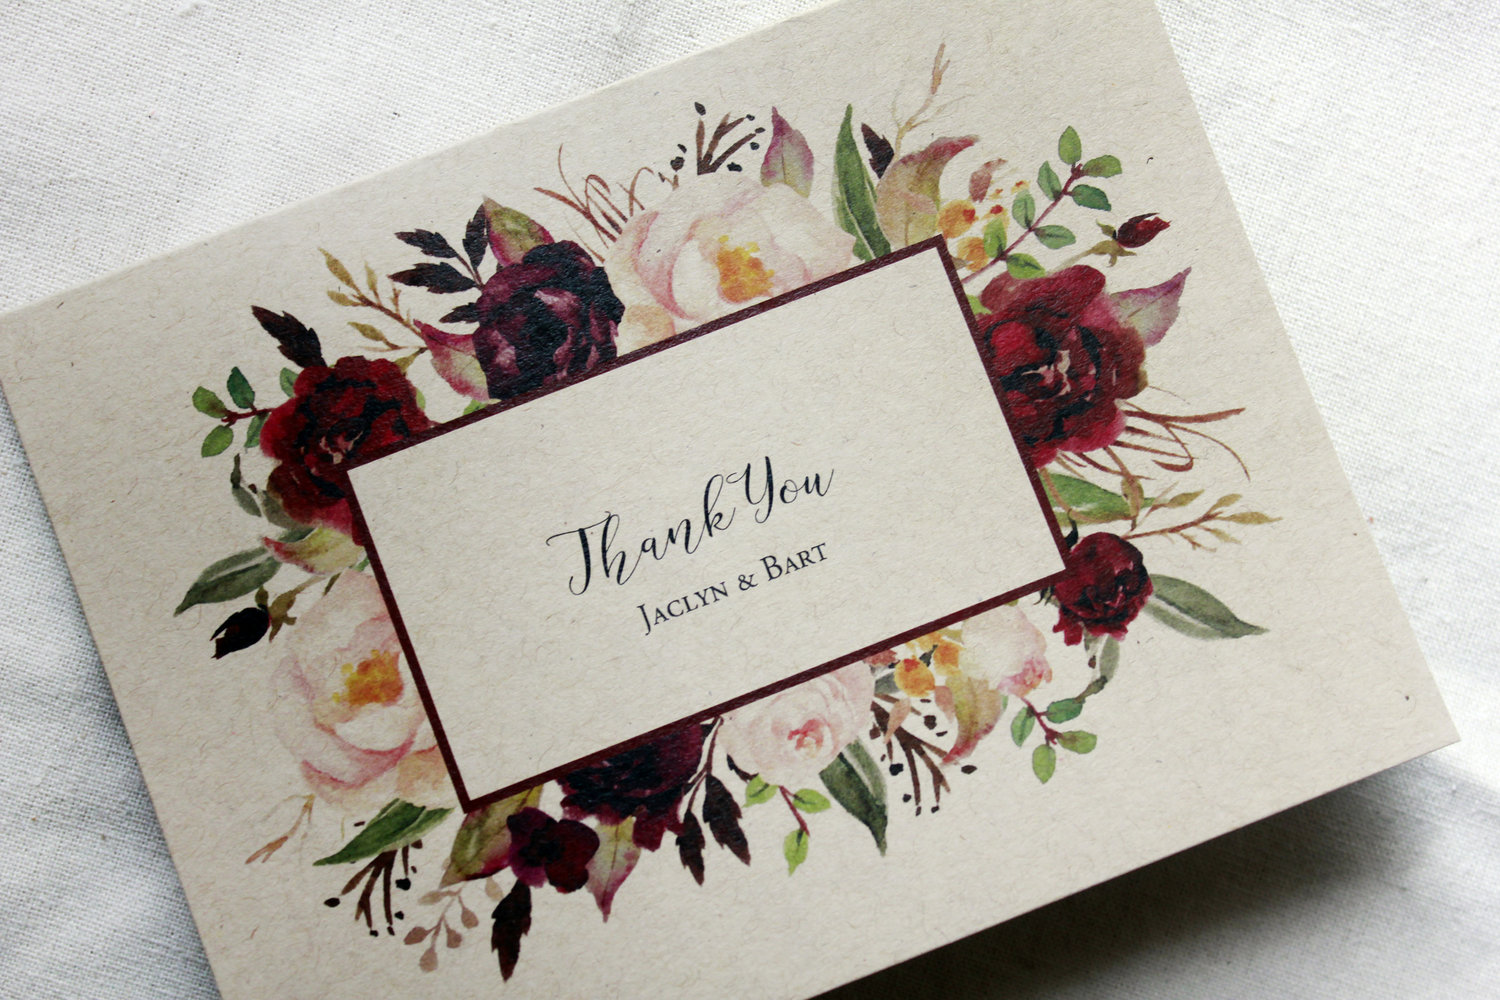 Marsala Thank You Card Set Boho Thank You Cards Wedding Thank You Notes Blank Note Cards Stationery Cards Set Of 5 Personalized Card Set